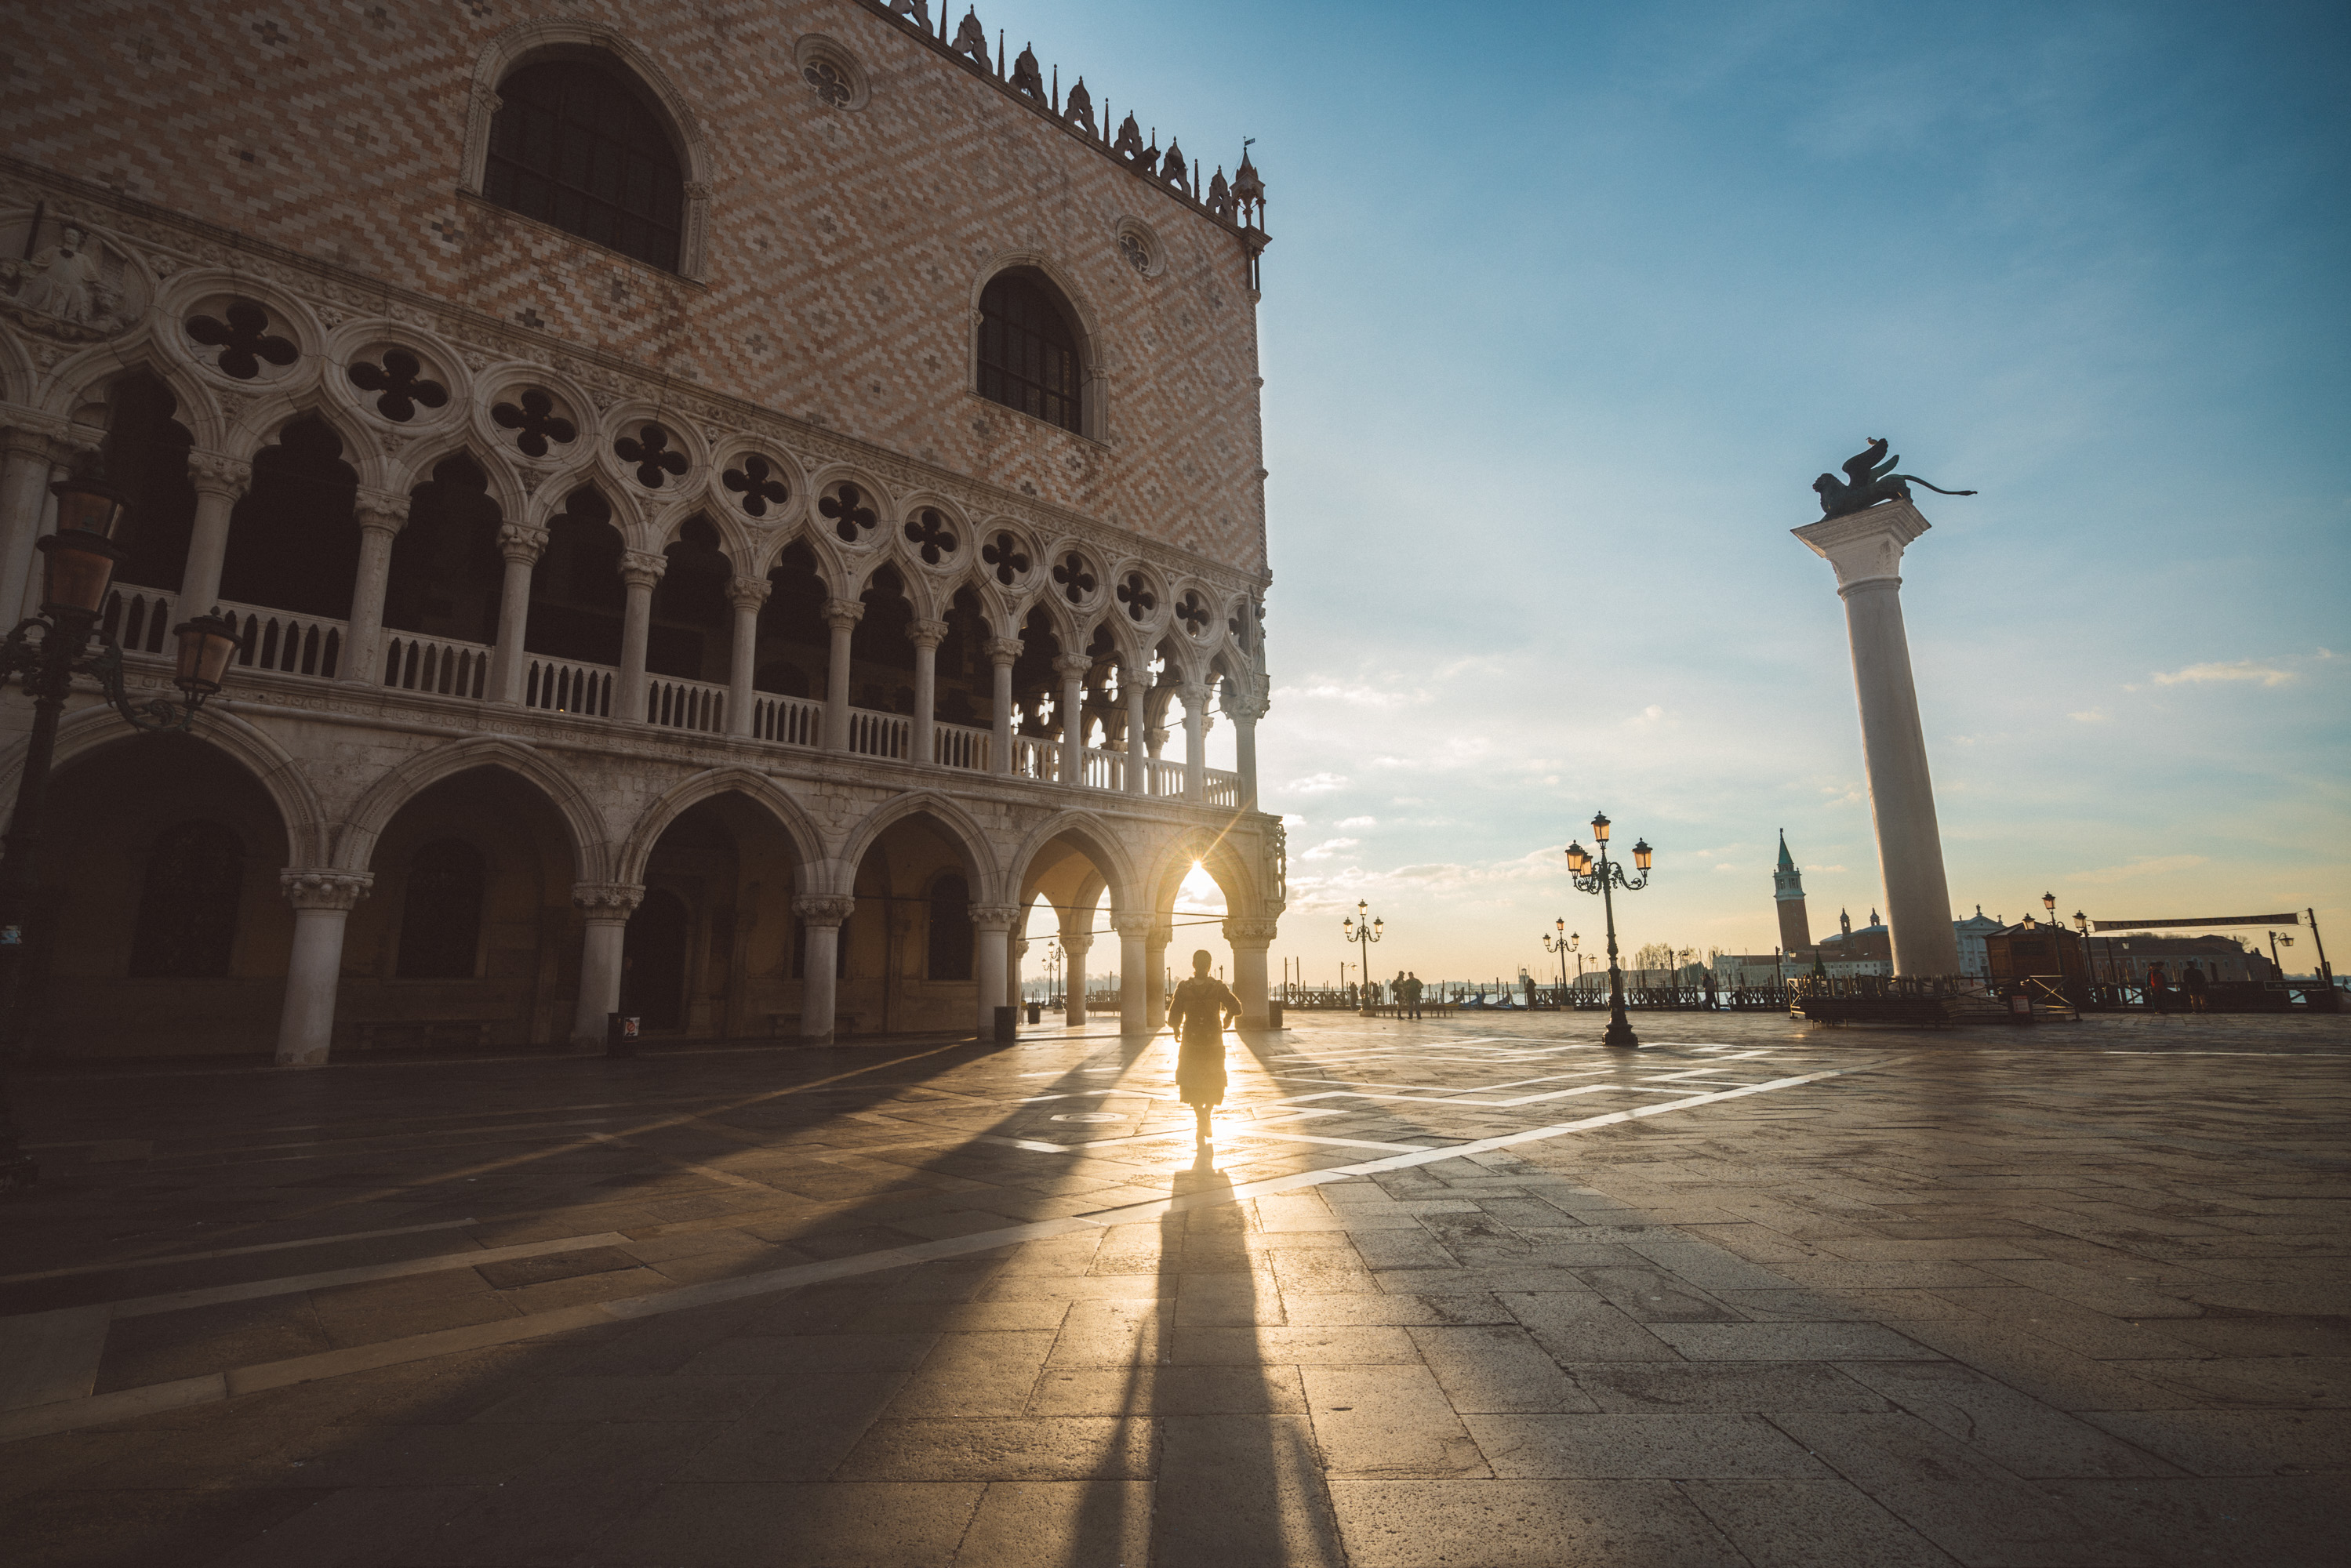 silhouette on Doge's Palace [David Tan]